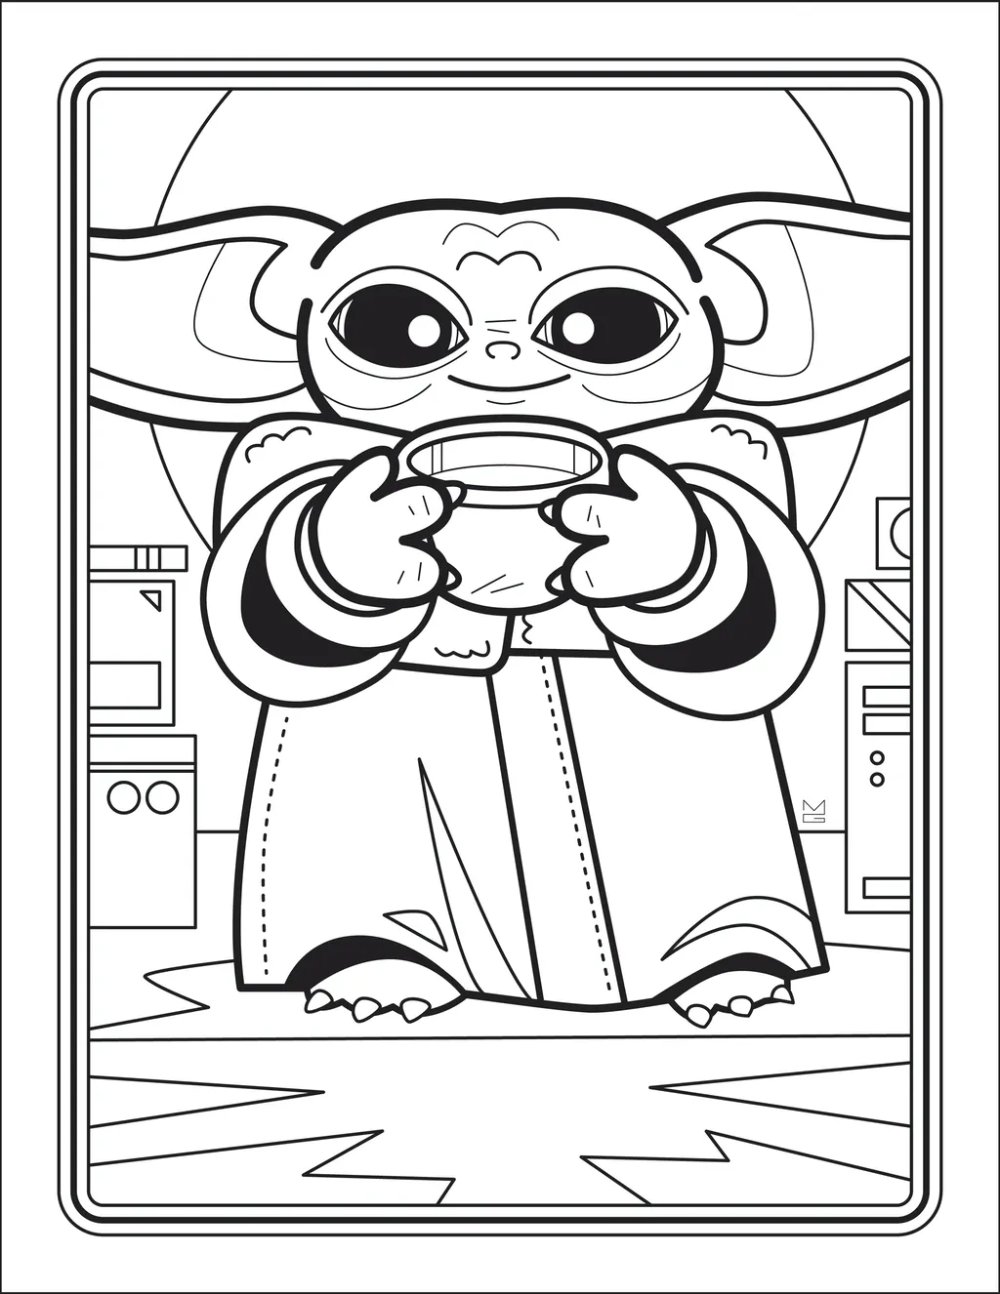 Free Coloring Pages For Kids Or Adults Who Still Have Fun Free Coloring Pages Star Wars Colors Free Coloring Sheets